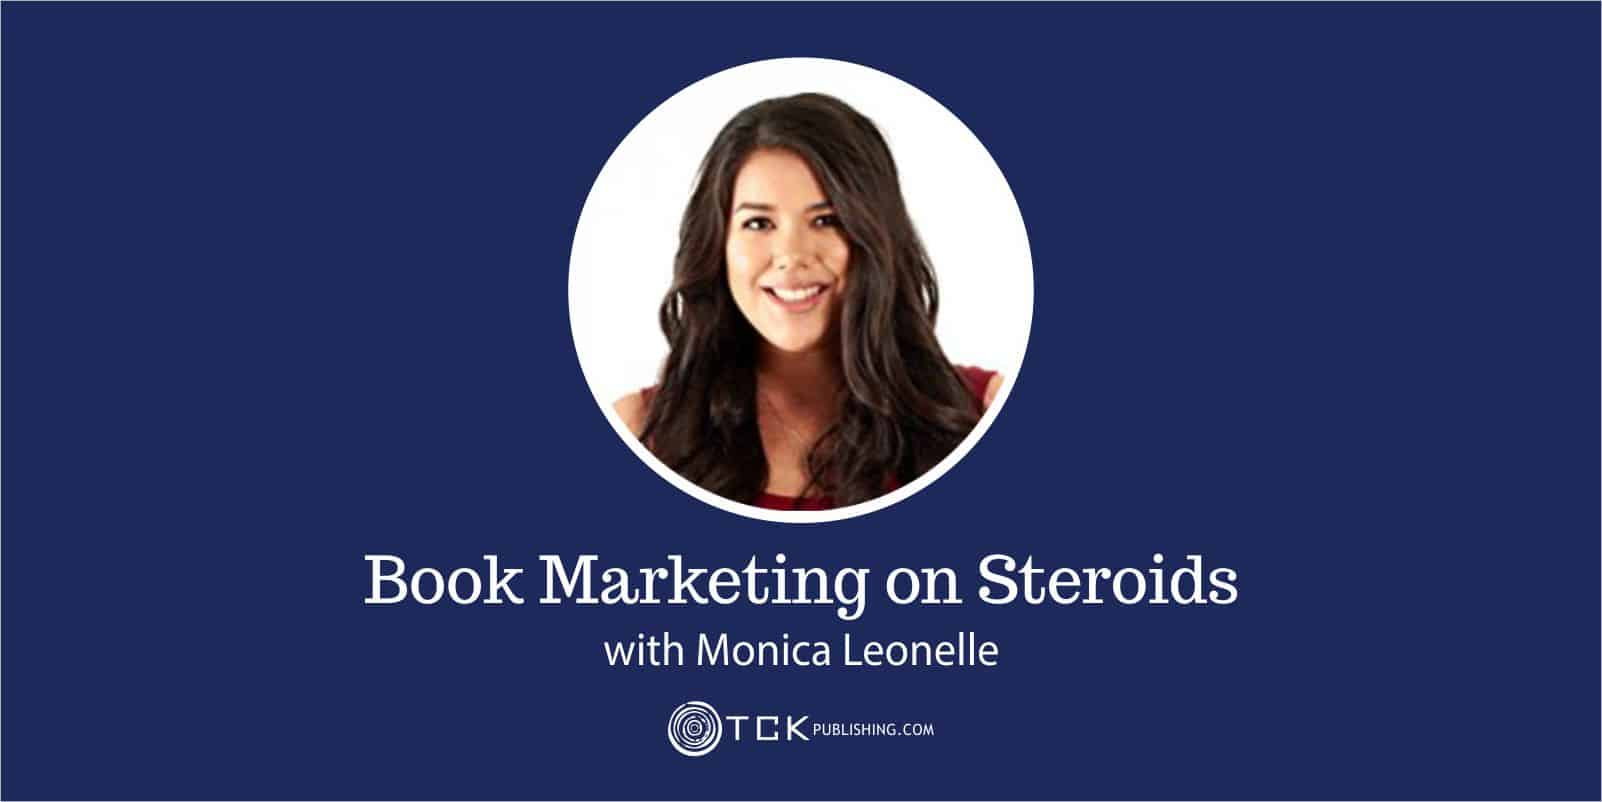 book marketing on steroids with Monica Leonelle